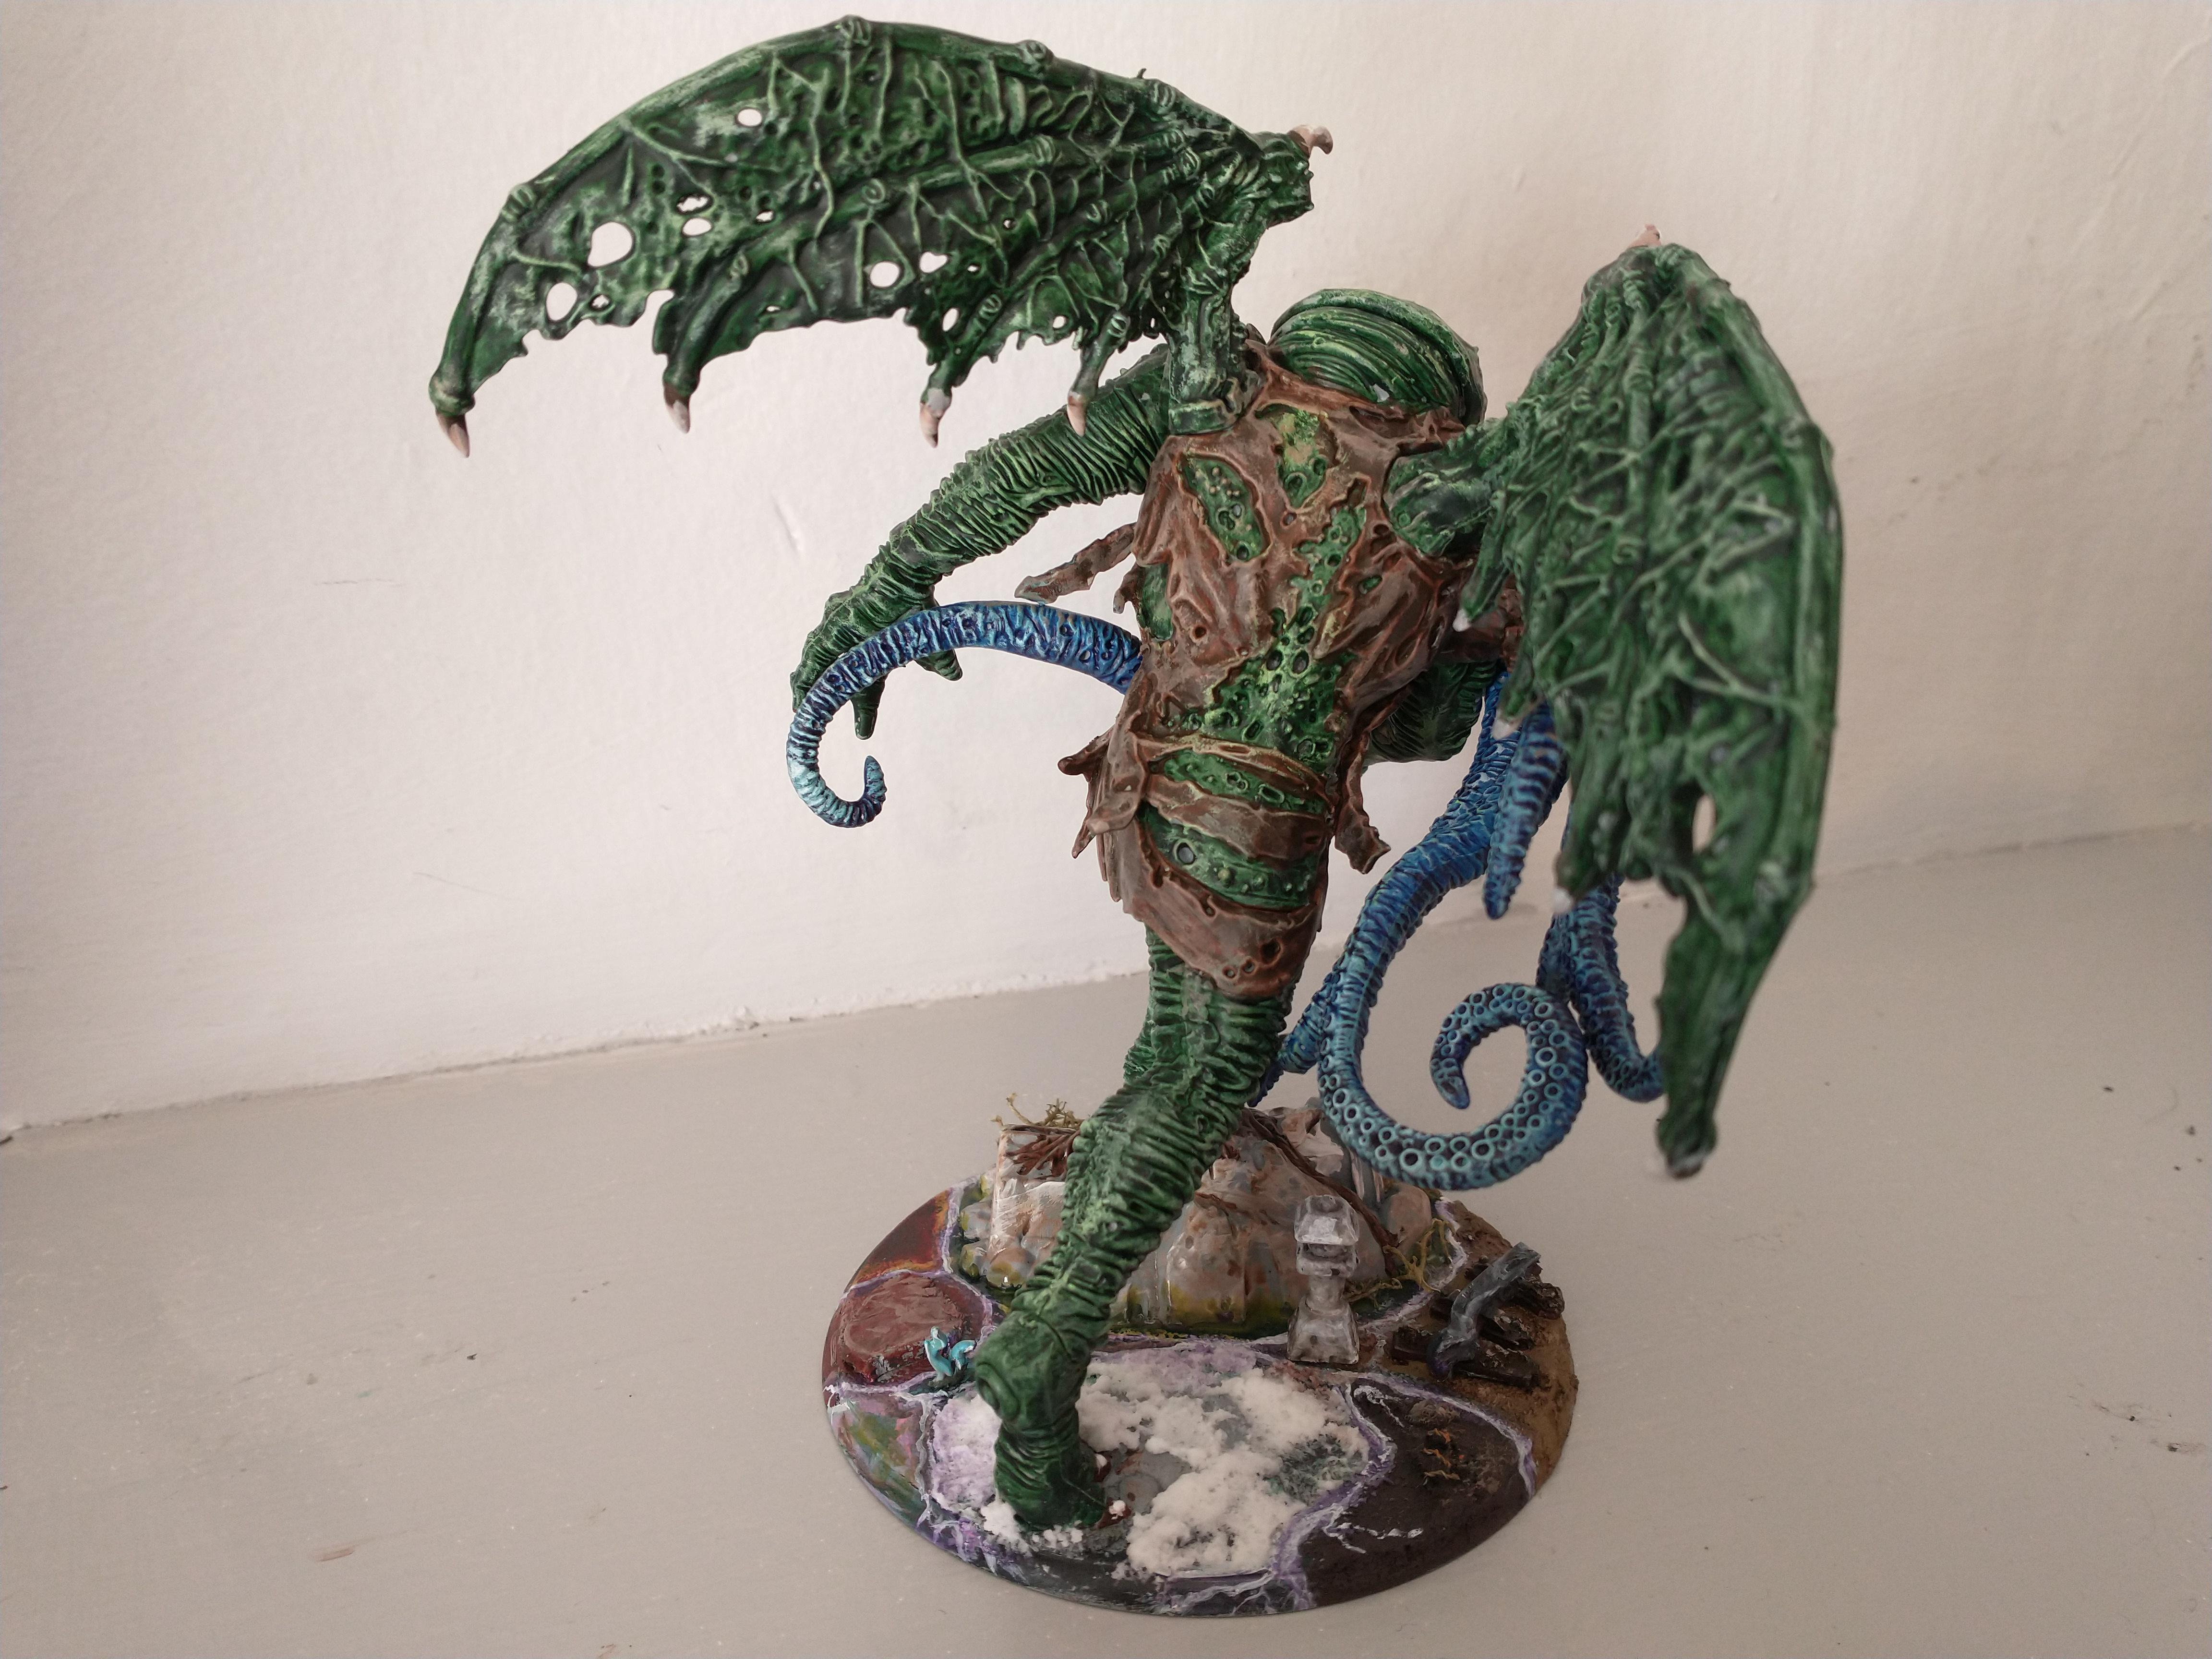 Great Cthulhu, the Ancient One rear